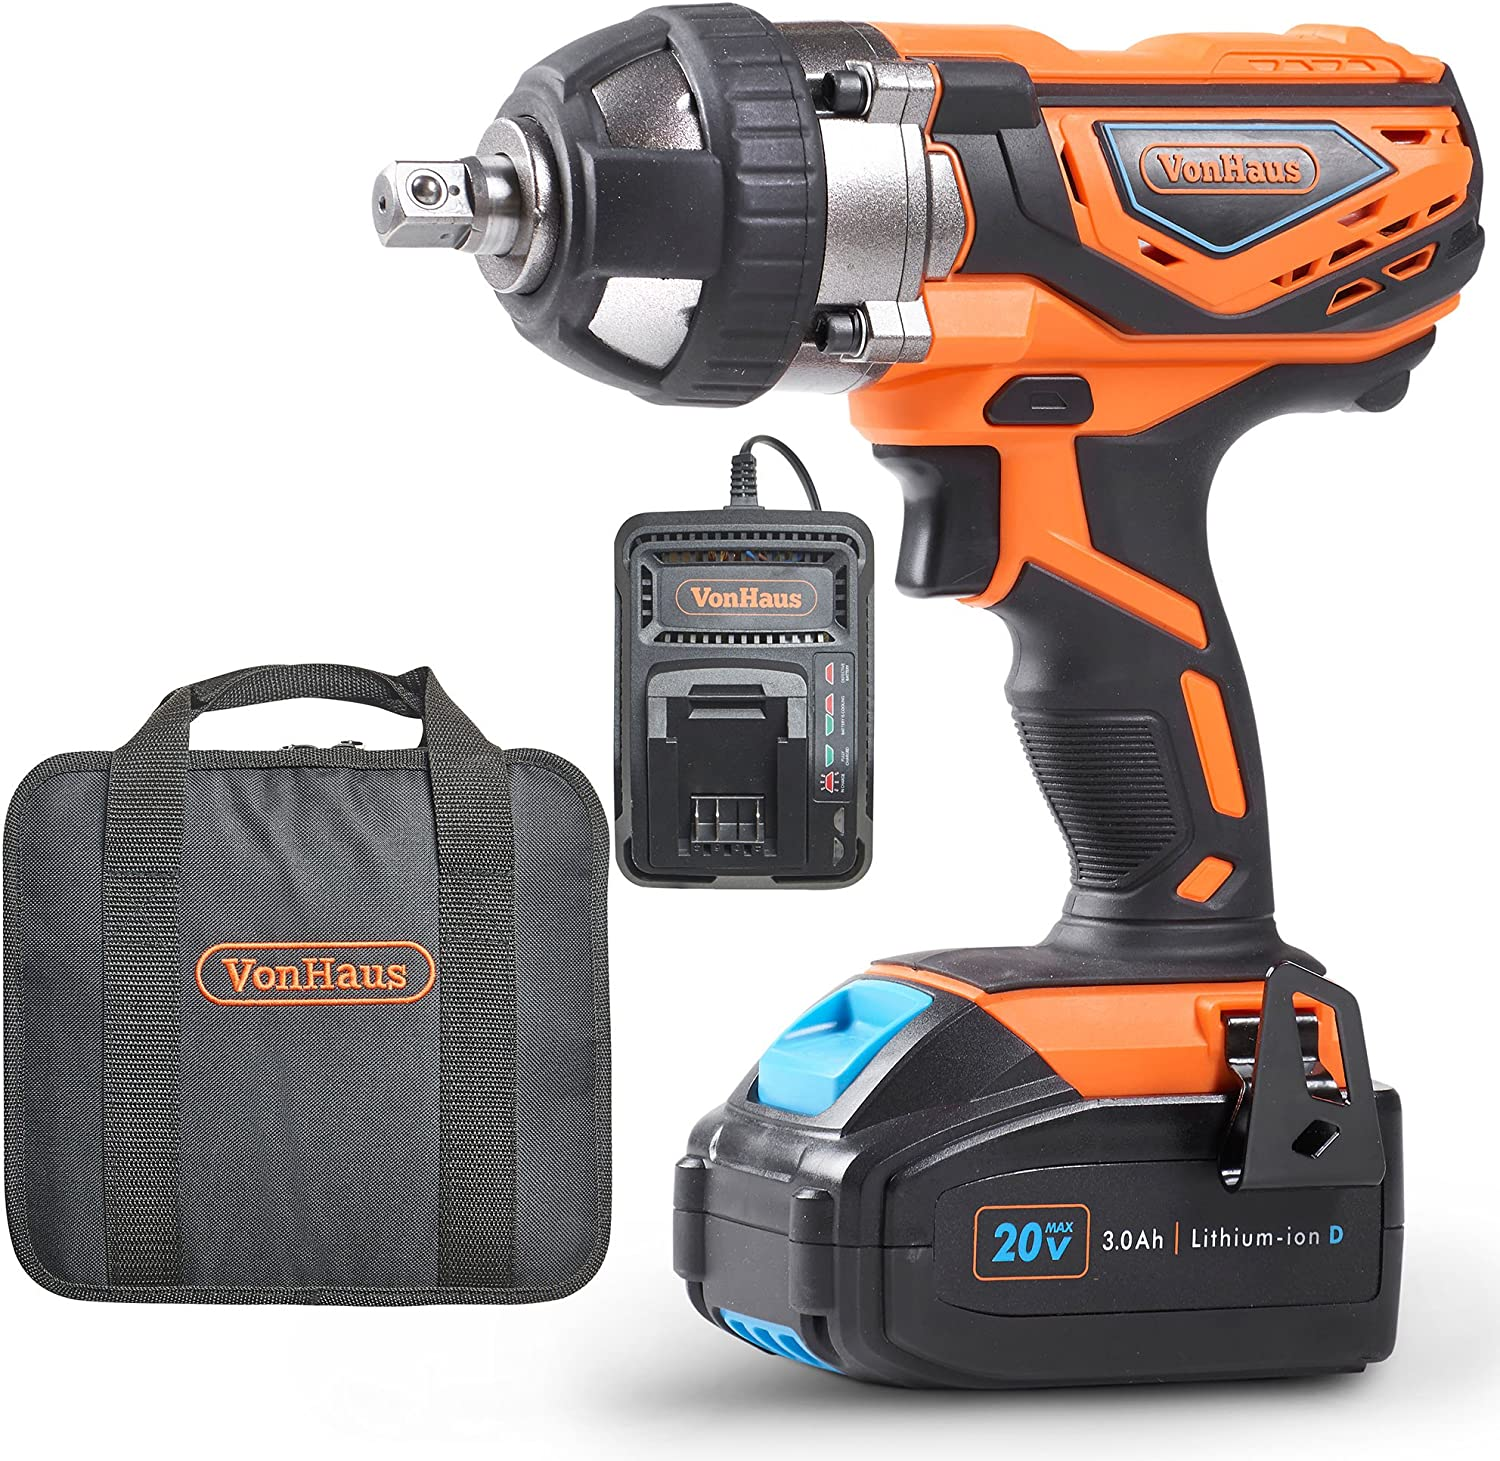 Cordless Drill Driver Lomvum 20V Power Drill with 2 Lithium Batteries, 1 Faster Charger, 2-Speed 3 8 Keyless Chuck, Magnetic Flexible Shaft,LED, Waist Bag, Compact Case, Extra 46pcs Accessories